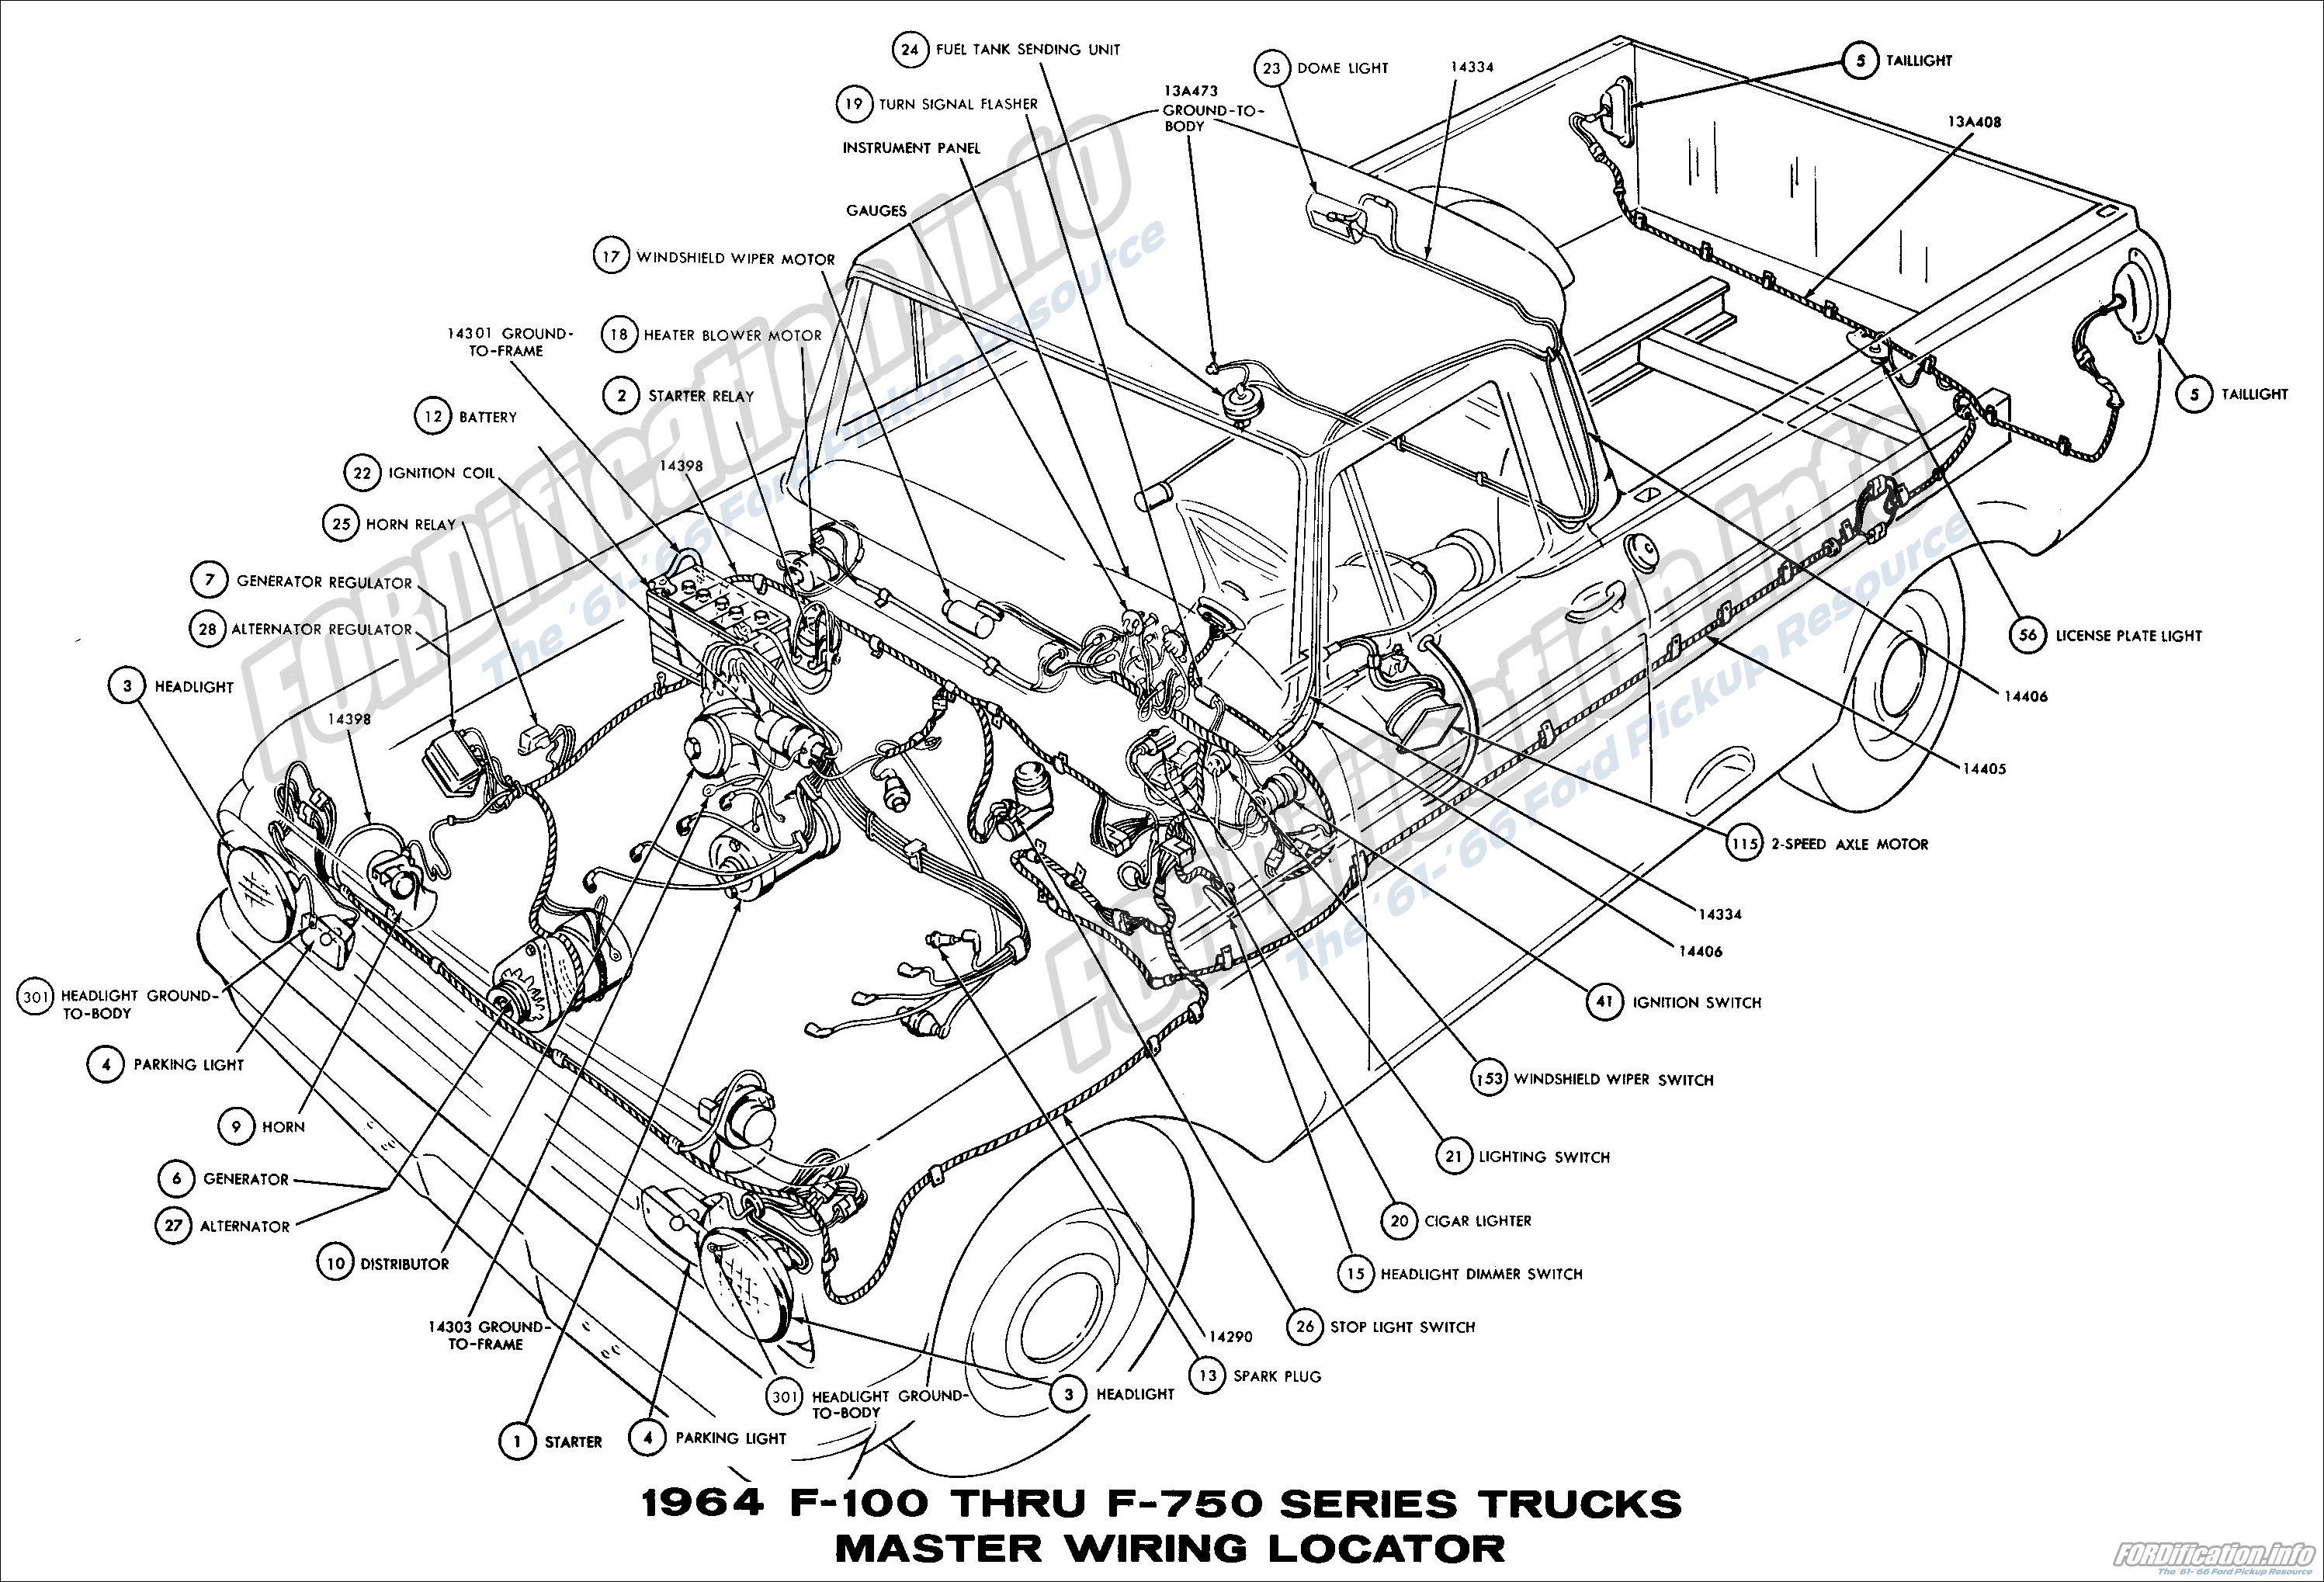 1964_01_gif 1964 ford truck wiring diagrams fordification info the '61 '66 truck wiring schematics at bayanpartner.co